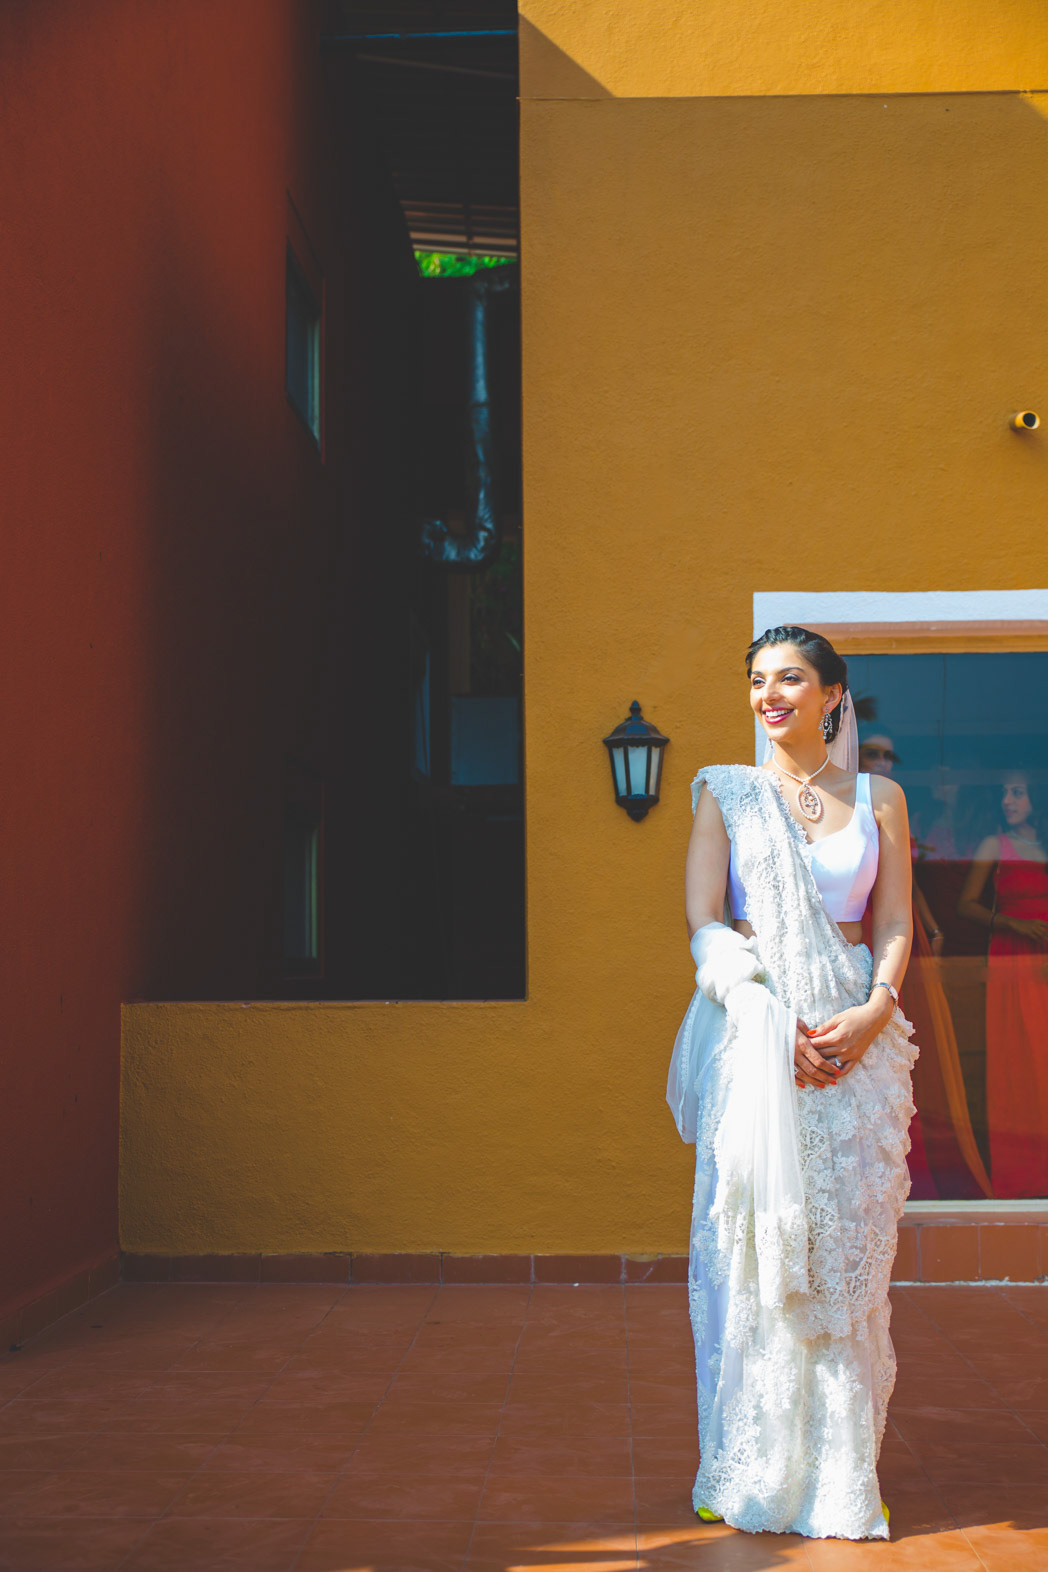 Big-Fat-Indian-Wedding-Destination-Goa-Cidade-de-goa-whatknot-candid-photography-55